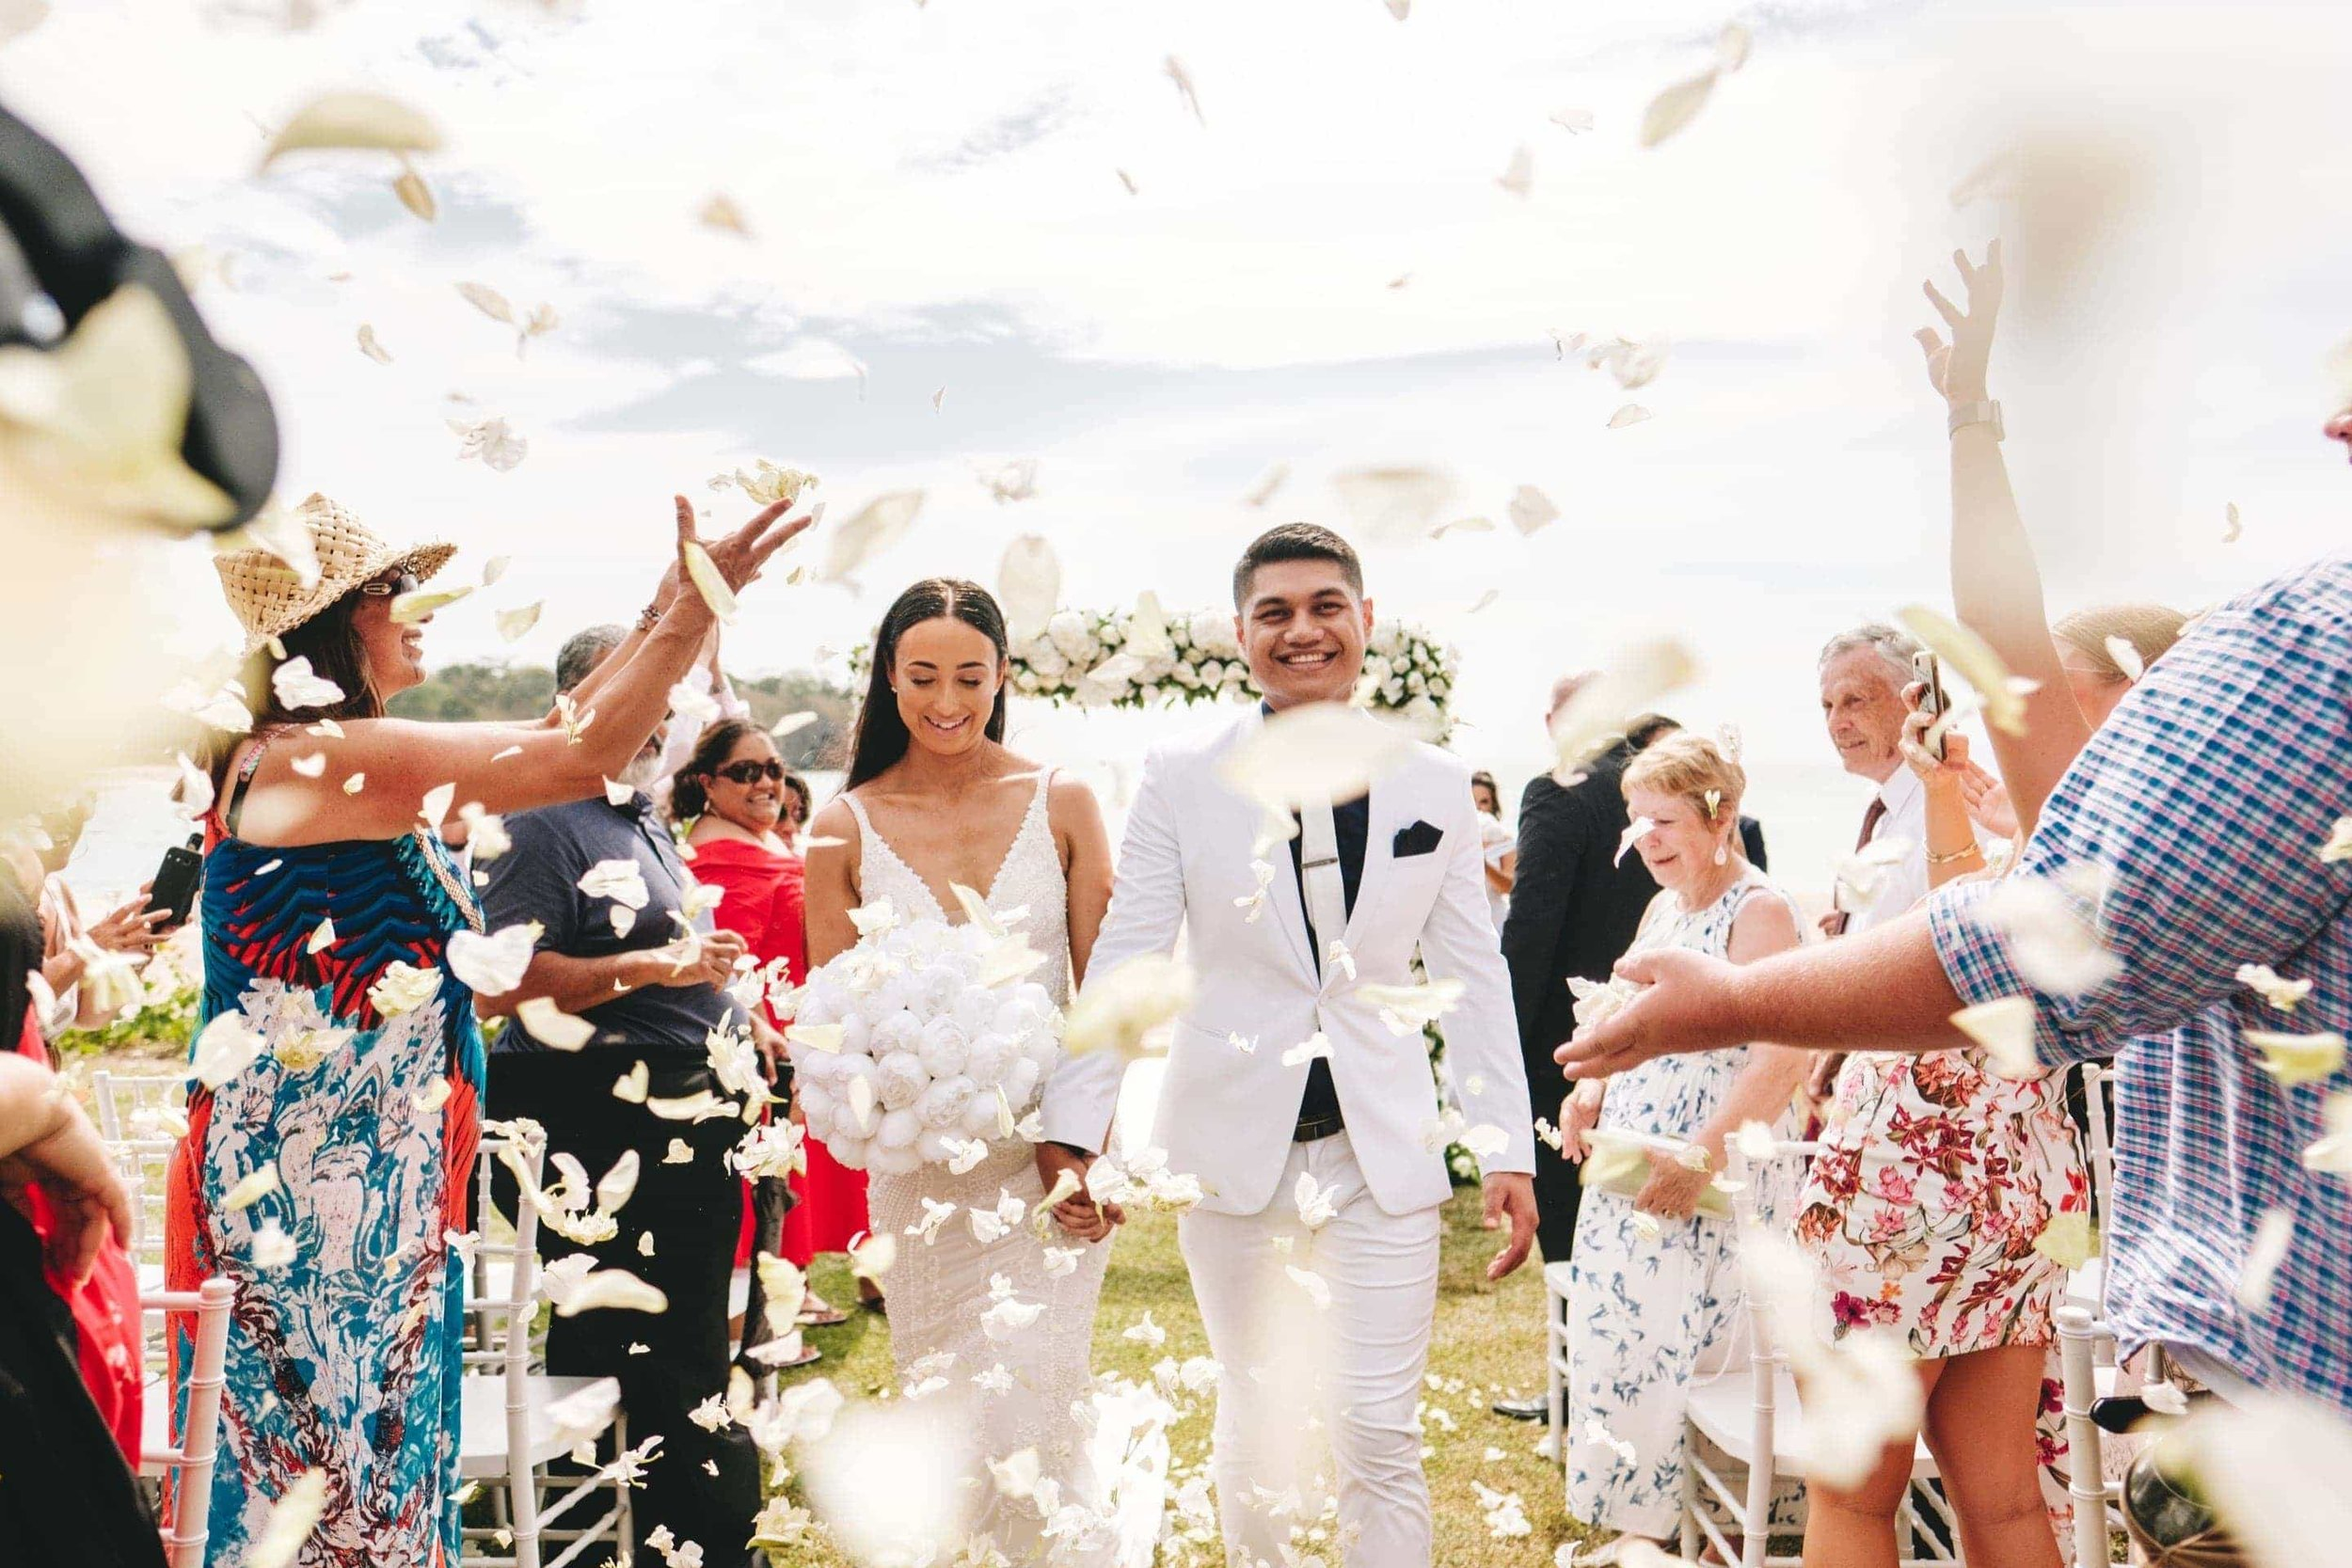 the couple showered in tropical flower confetti as the walk down the aisle together after the wedding ceremony